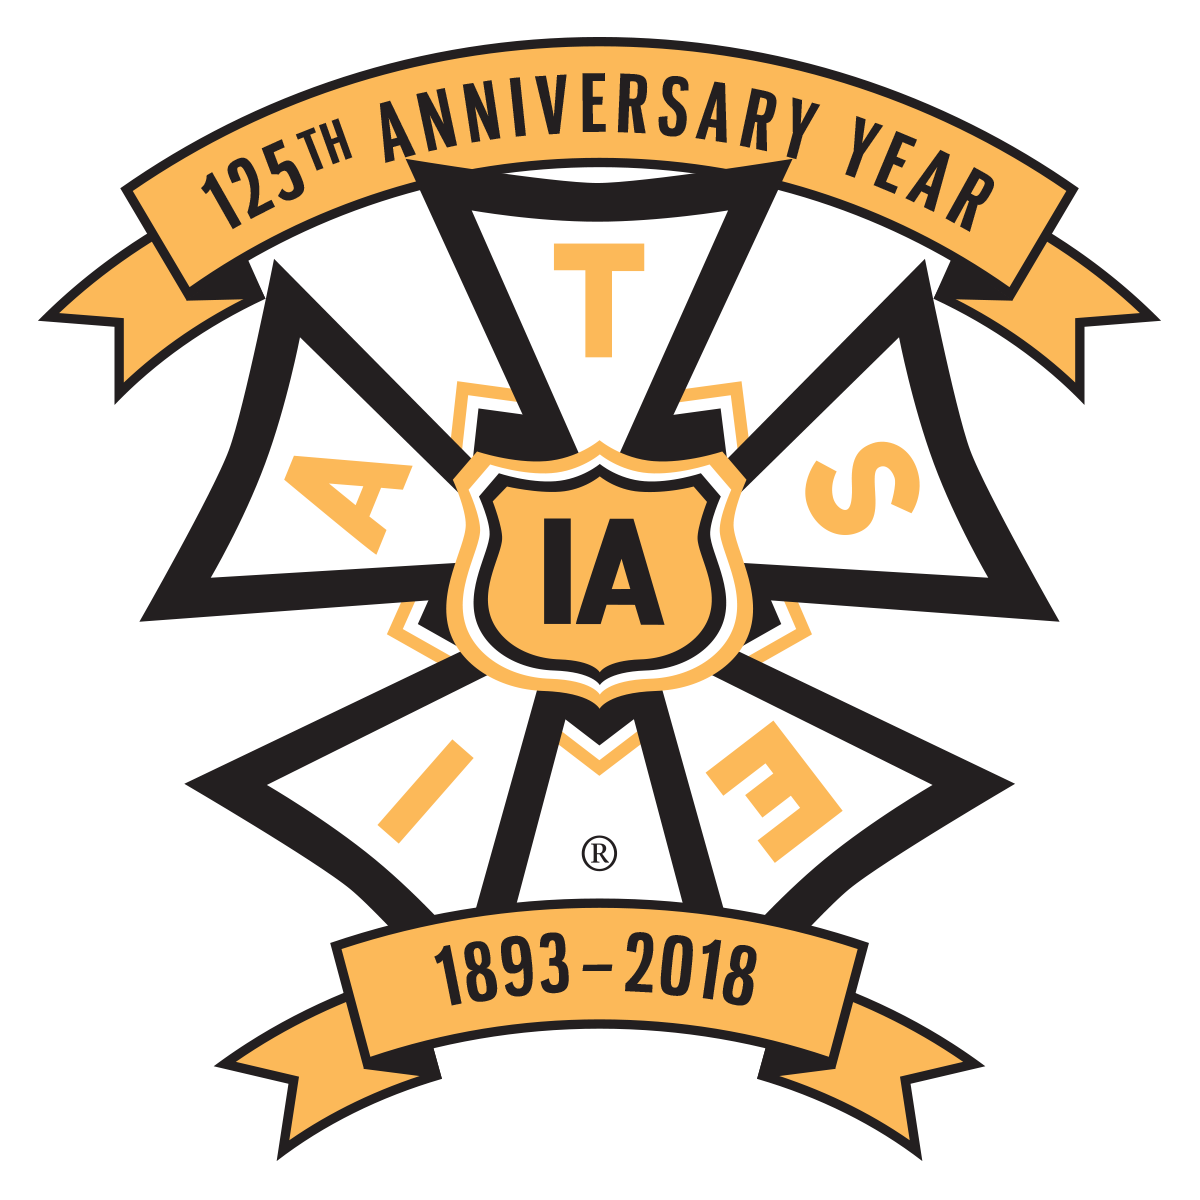 The National Alliance of Theatrical Stage Employes (sic) was chartered July 17th 1893. 125 years later, we celebrate a key milestone and our remarkable members. To that end, each day leading up to #IATSE125 we will share a picture highlighting IATSE members, past and present.